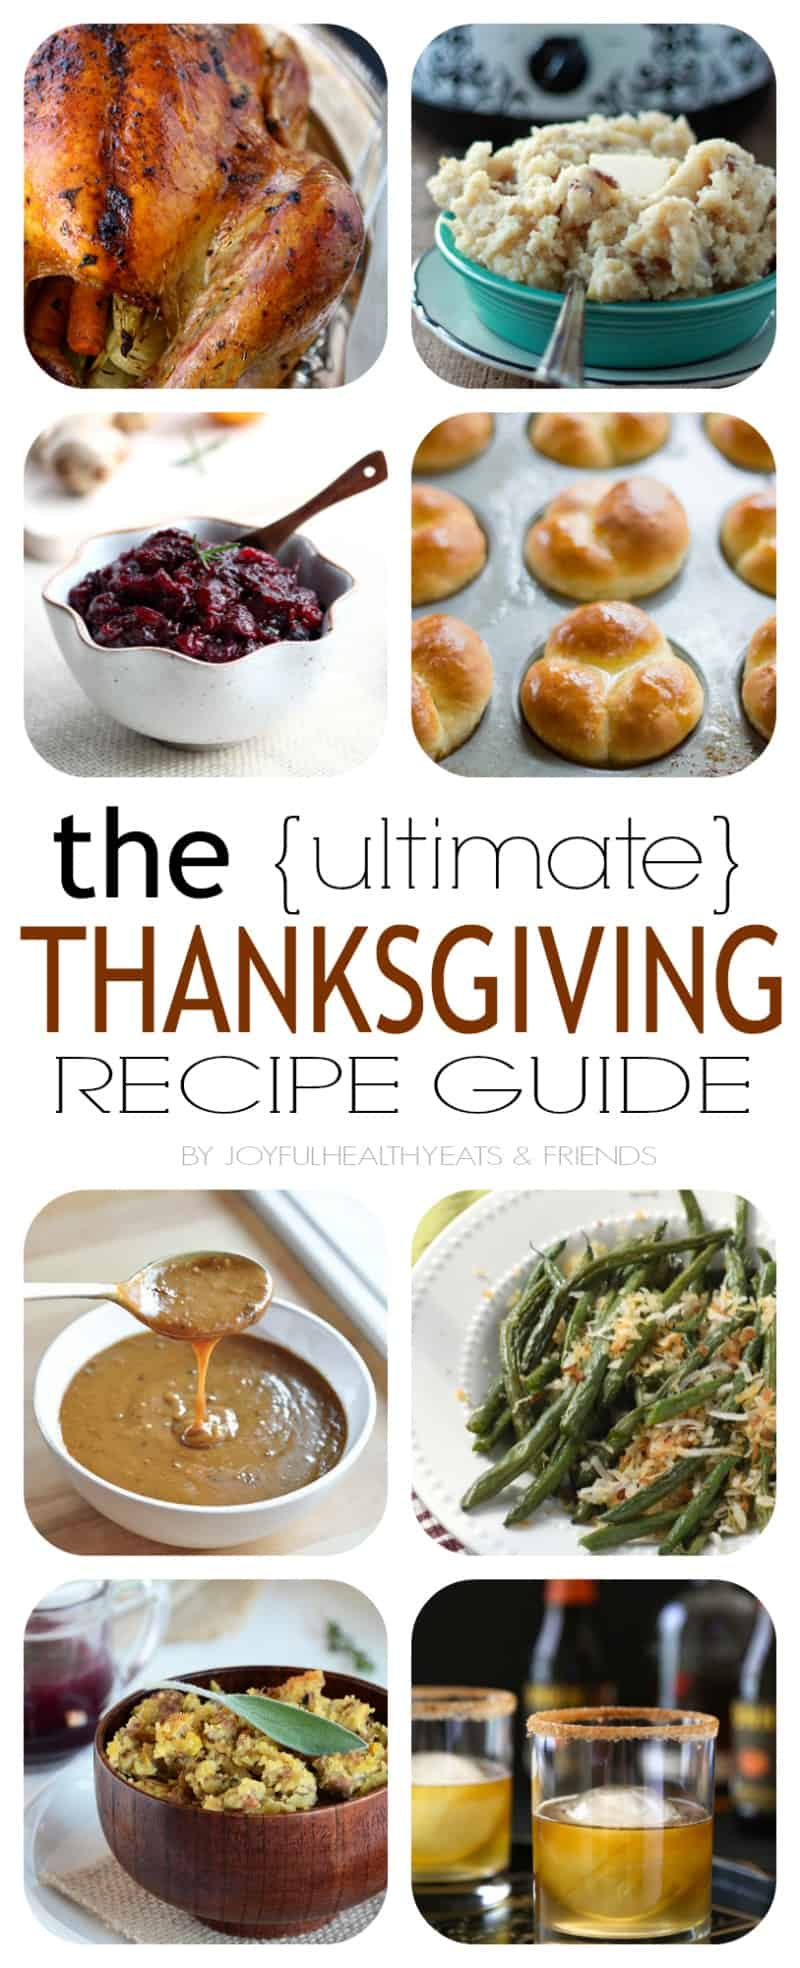 The Ultimate Thanksgiving Recipe Guide with all your favorite heavy hitters, Roasted Turkey, Lump Free Gravy, Homemade Dinner Rolls, and Pumpkin Pie. Come and get it! | www.joyfulhealthyeats.com